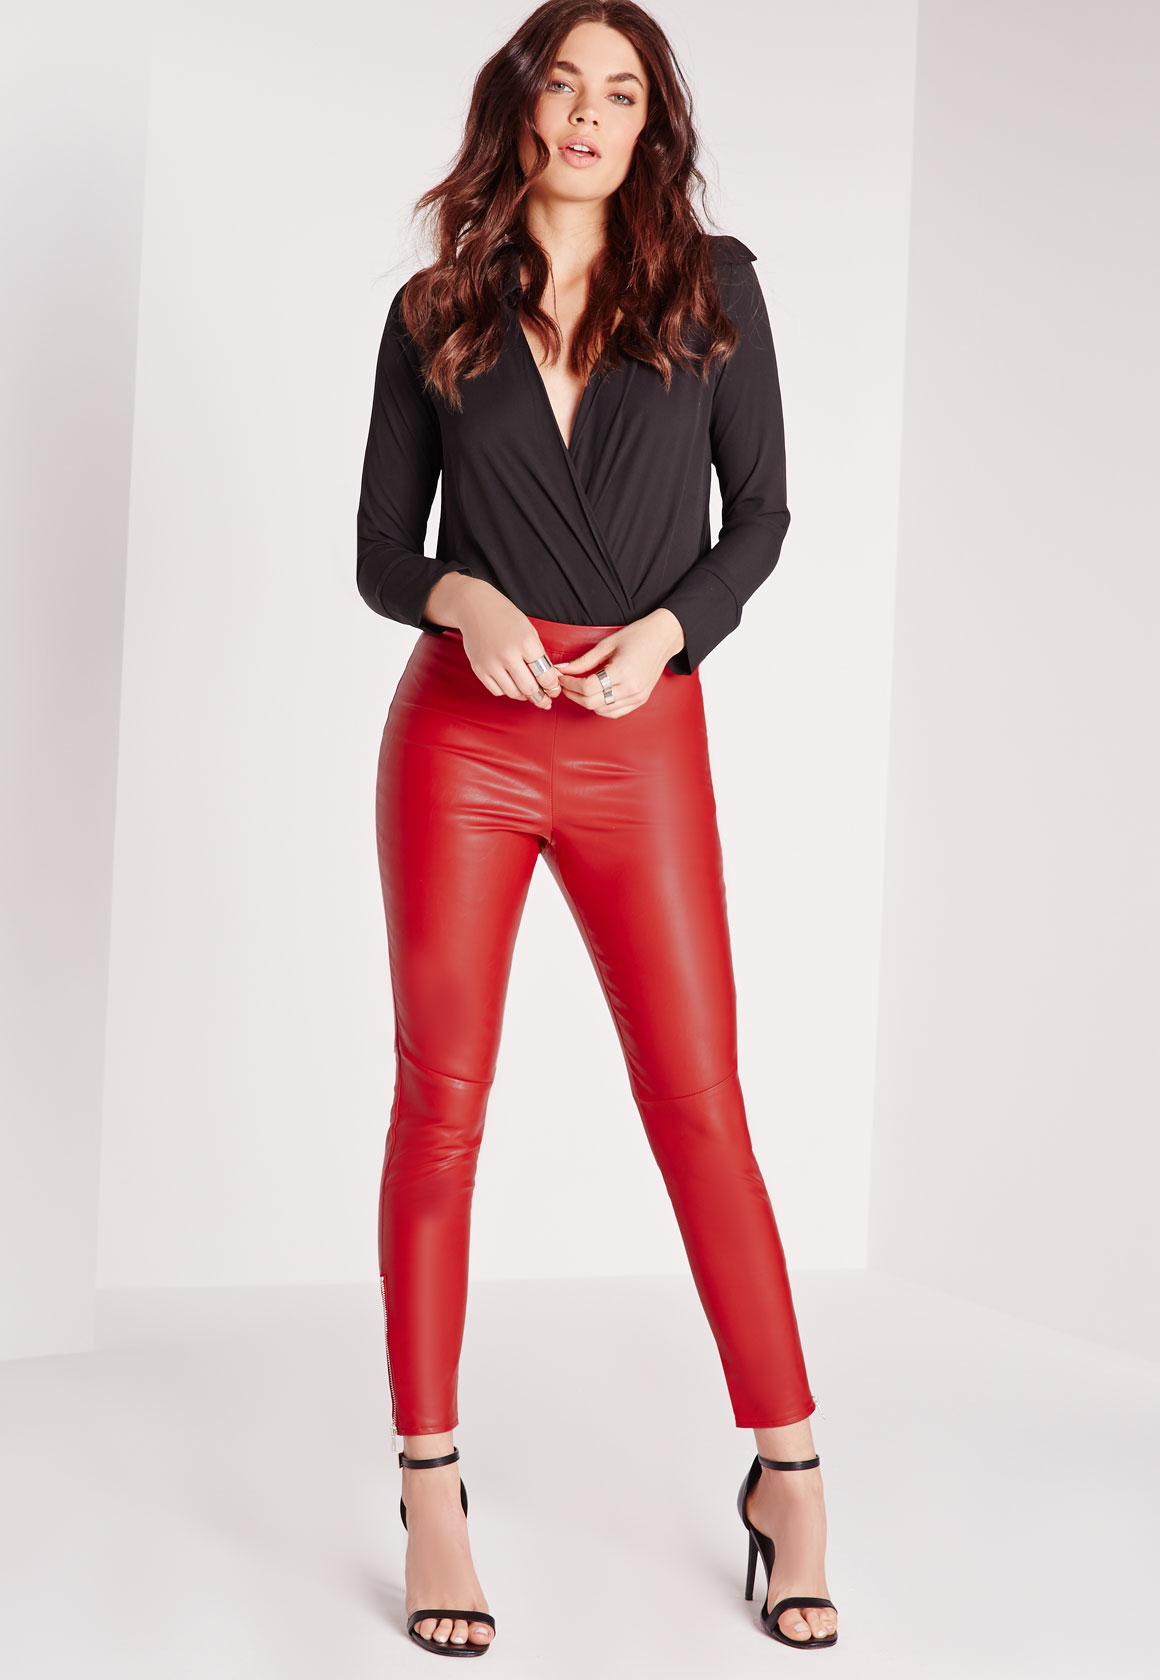 Lyst - Missguided Ankle Zip Faux Leather Pants Red in Black